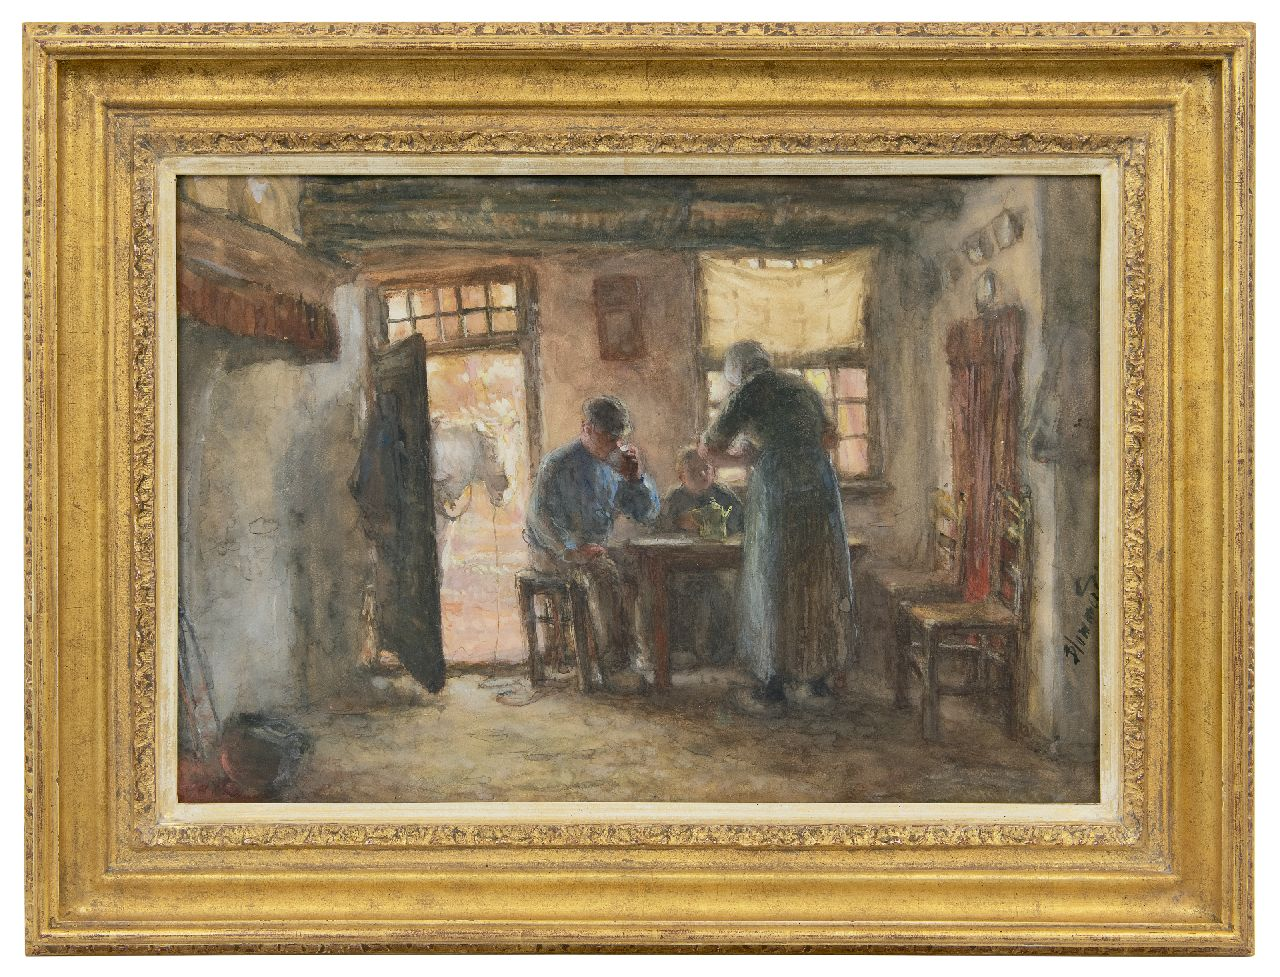 Blommers B.J.  | Bernardus Johannes Blommers | Watercolours and drawings offered for sale | Farmers family around the table, watercolour on paper 37.6 x 54.3 cm, signed l.r.